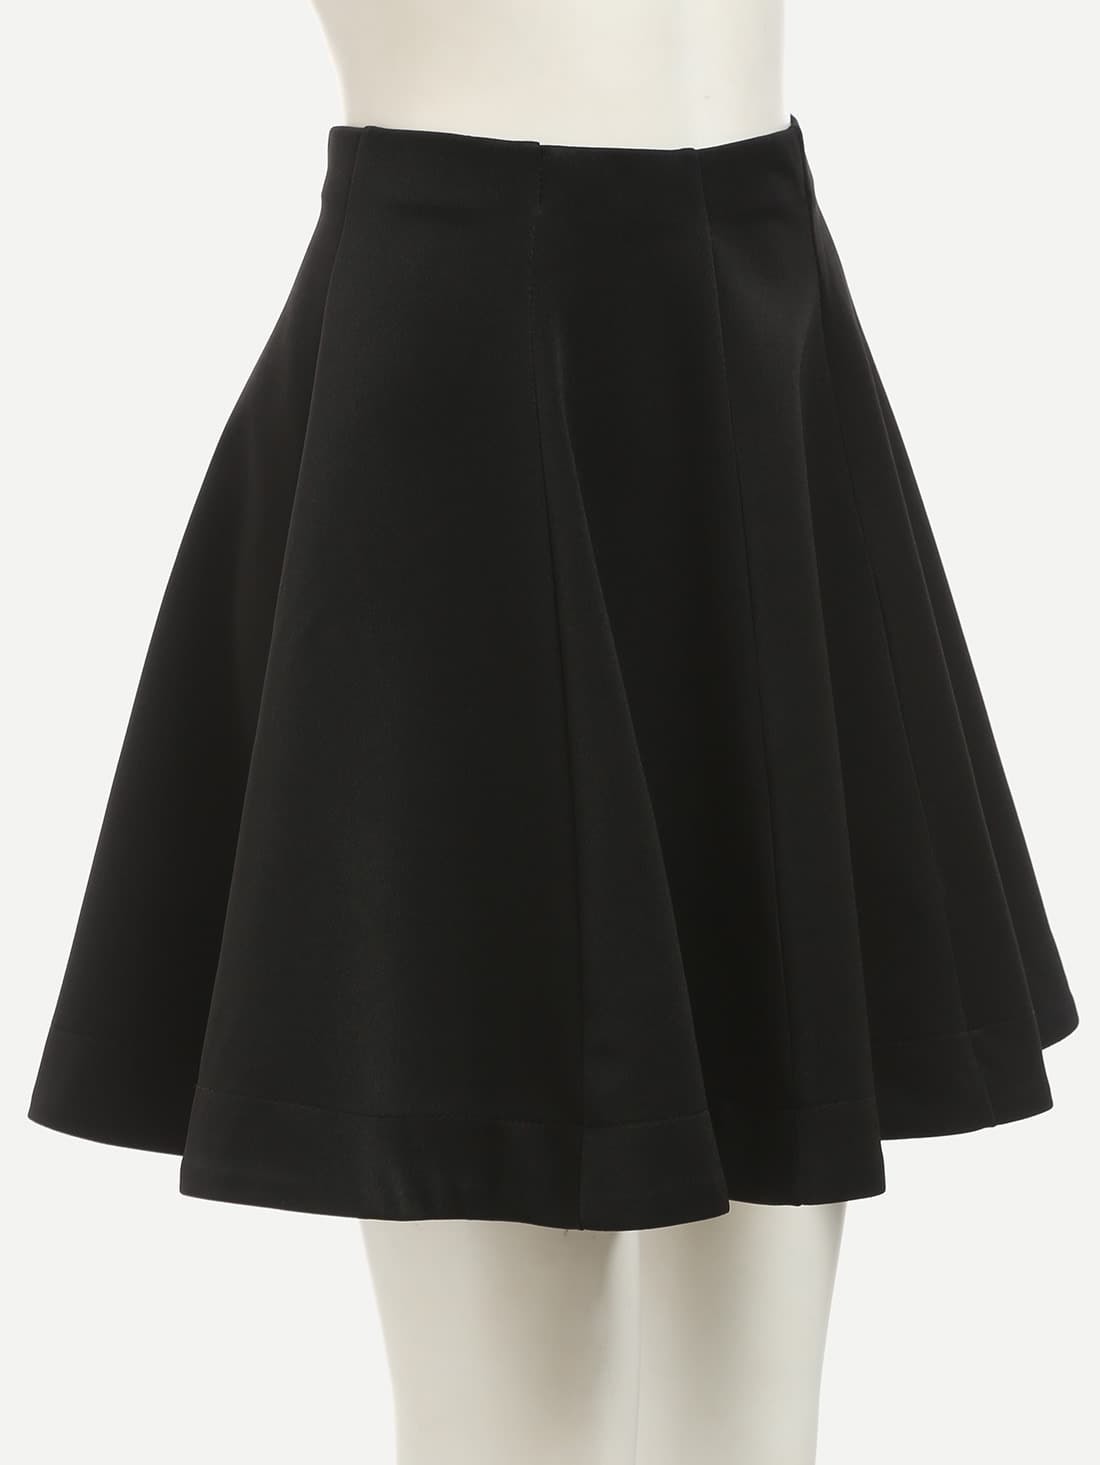 Buy the latest plain black skirt cheap shop fashion style with free shipping, and check out our daily updated new arrival plain black skirt at getdangero.ga